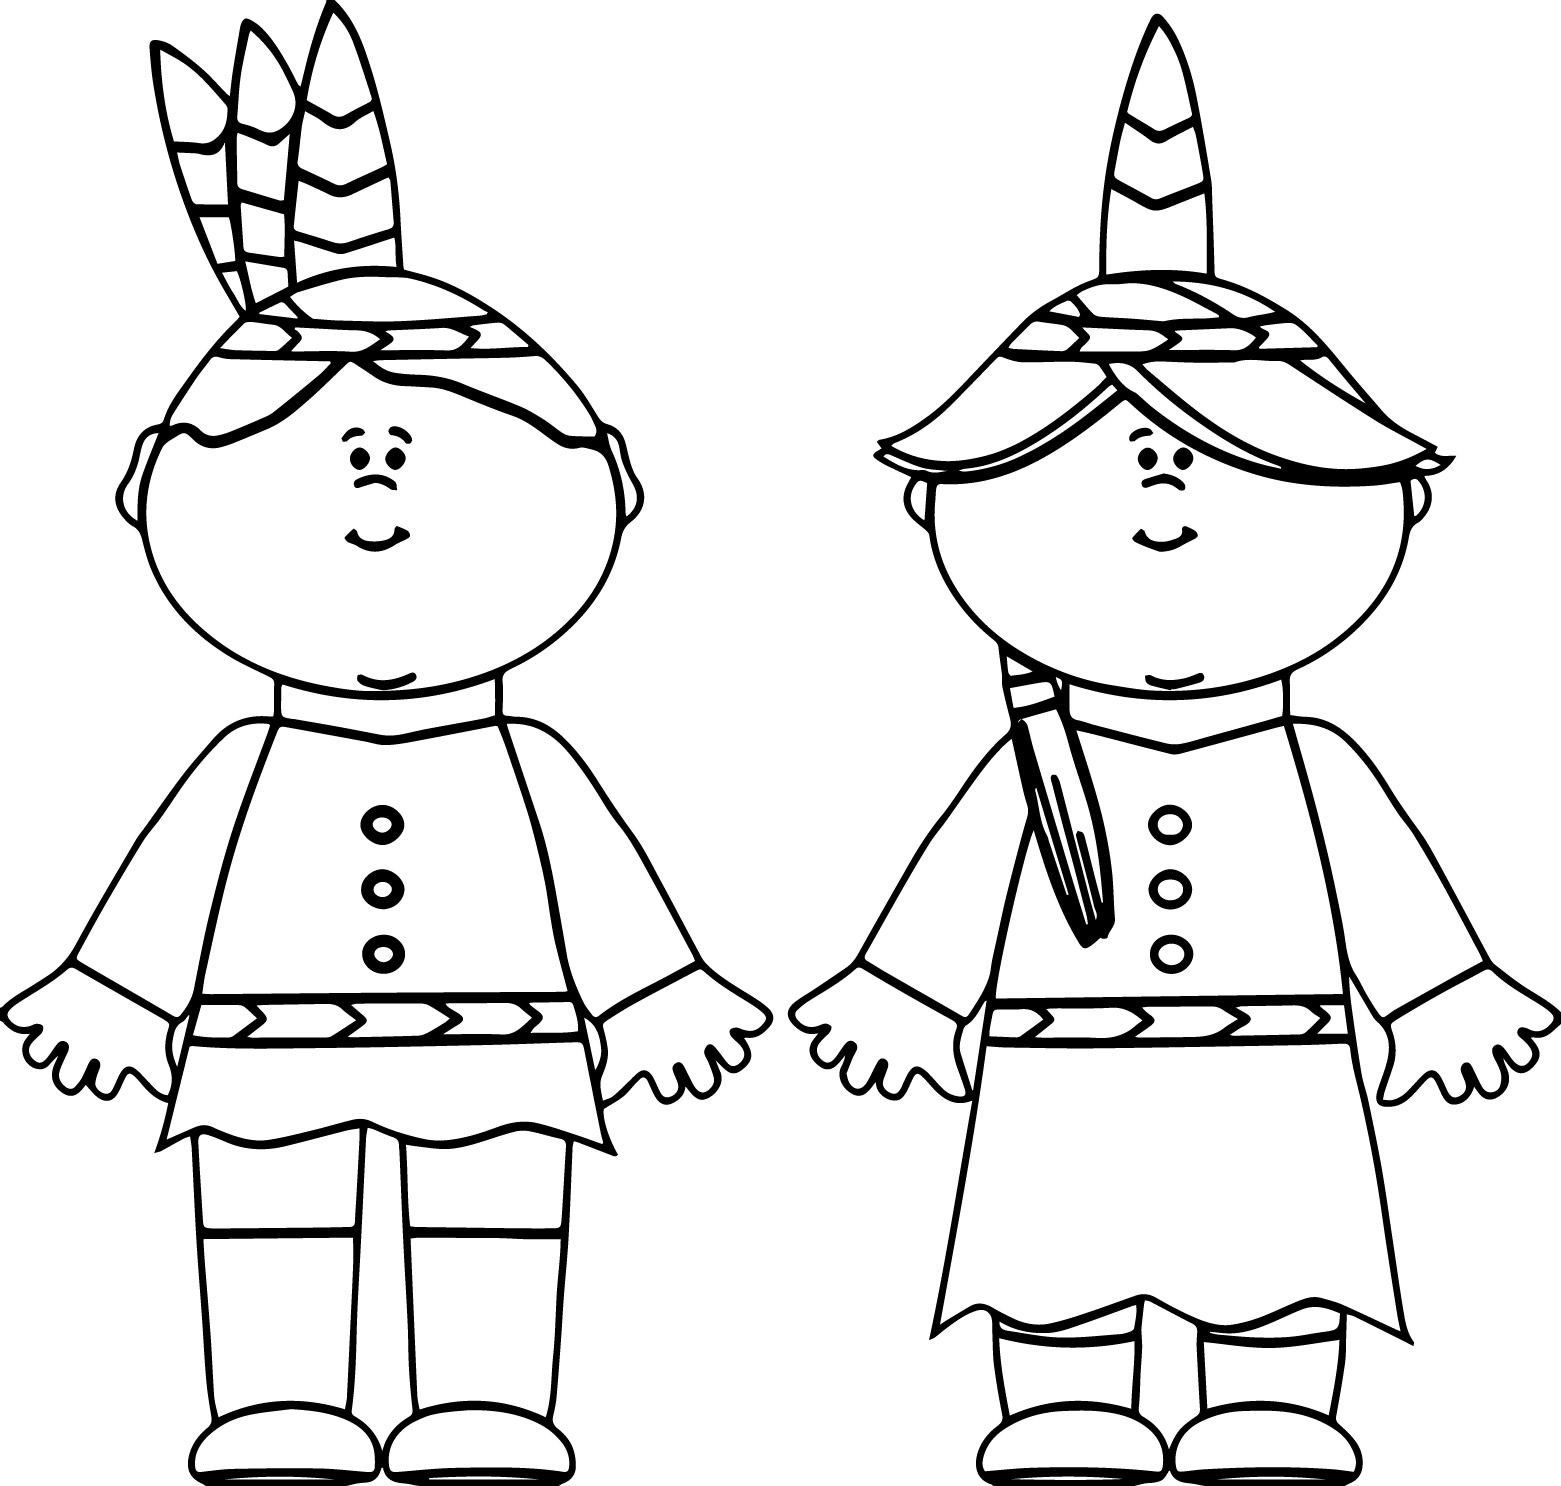 coloring pages of indians - photo#42